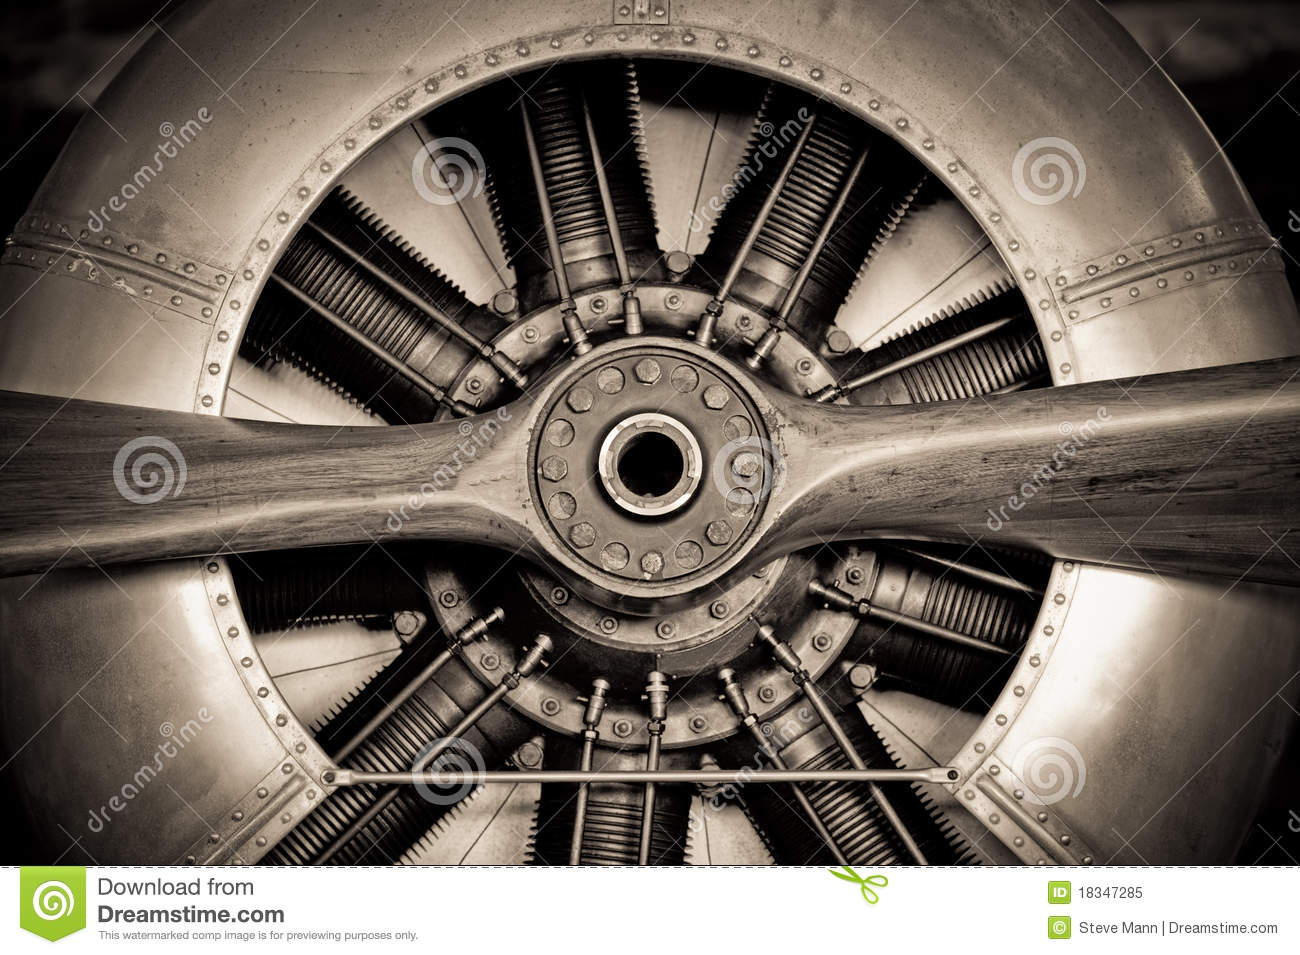 Download Aircraft engine stock image. Image of parts, blades, abstract - 18347285